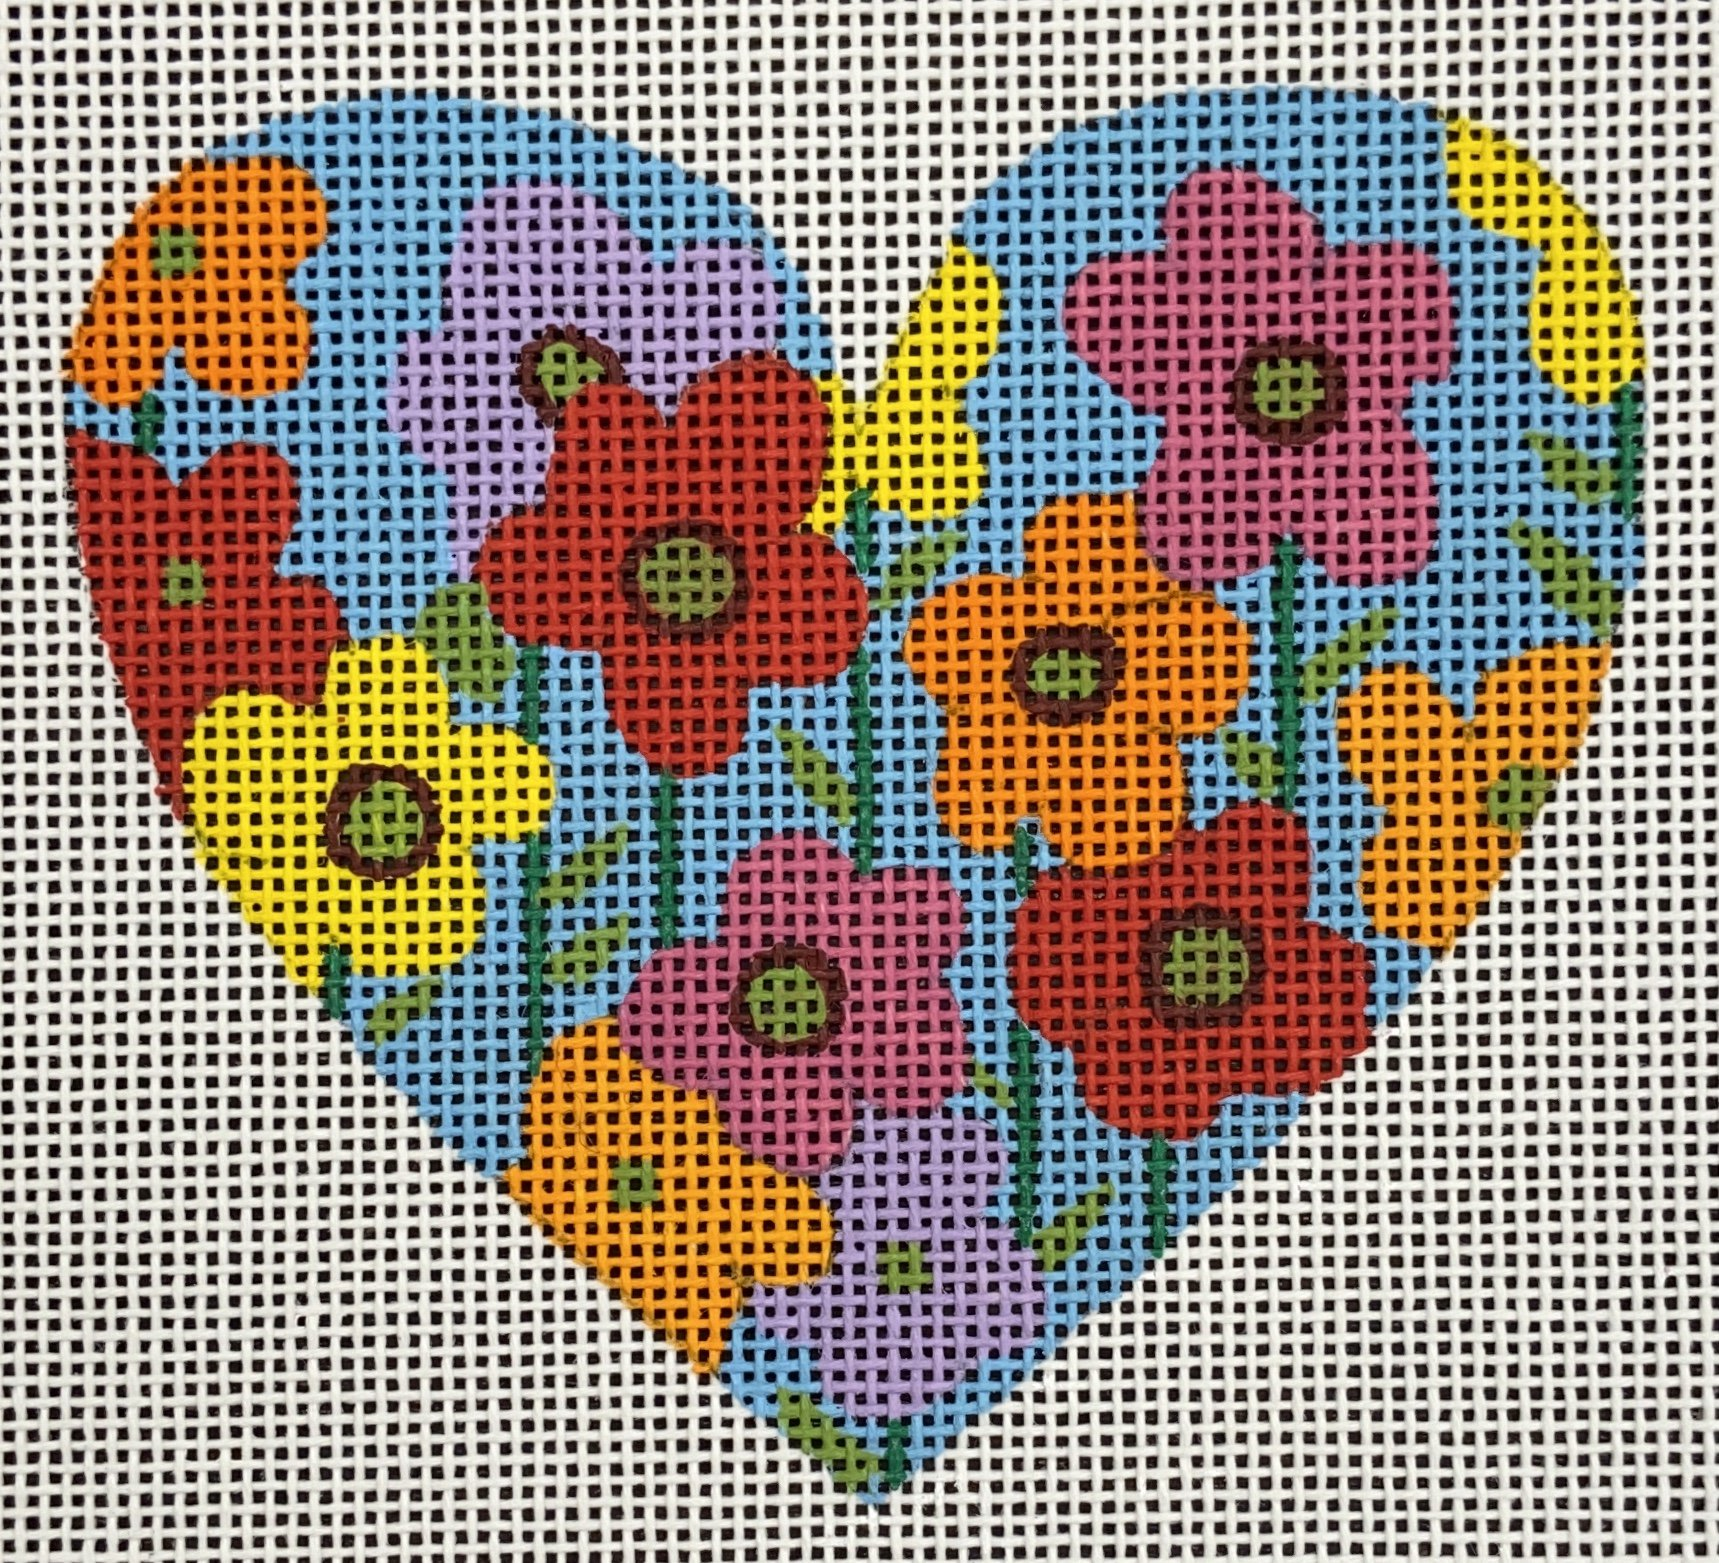 AWP4123A Heart with Flowers Ornament Ann Wheat Pace